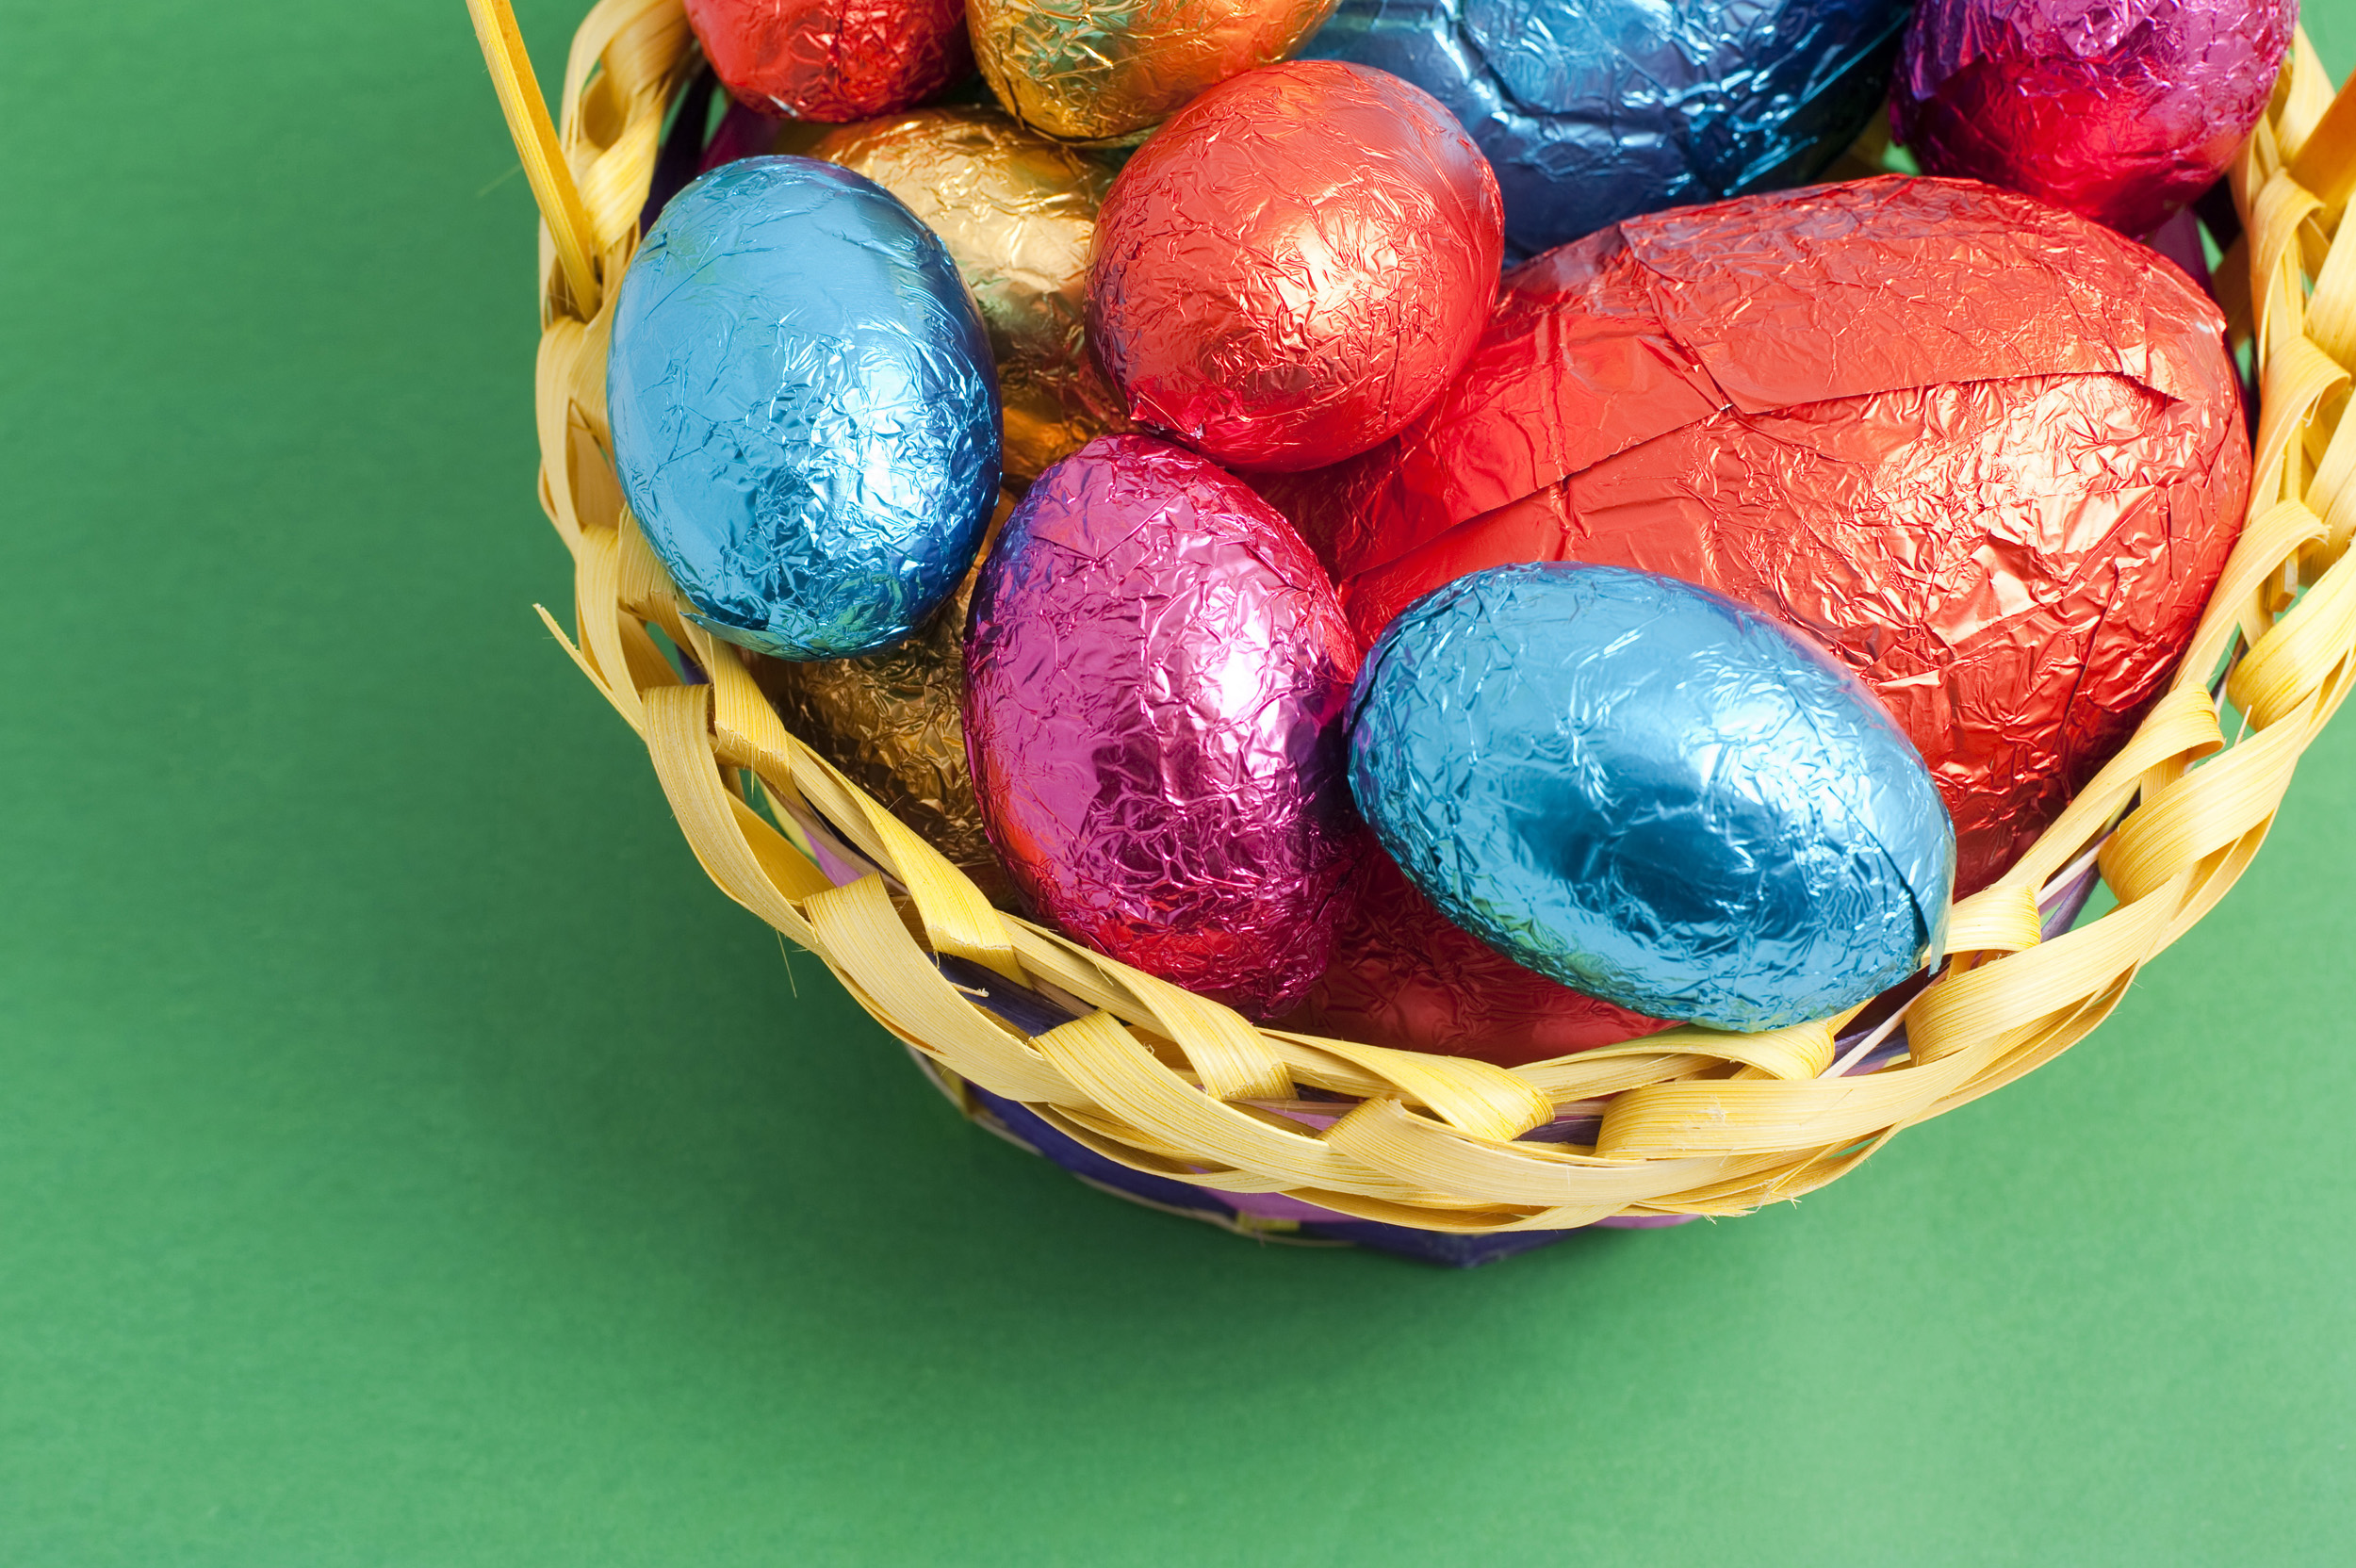 easter_corner.jpg - Corner of colourful Easter Eggs of varying sizes in shiny foil wrapping collected in a wicker basket